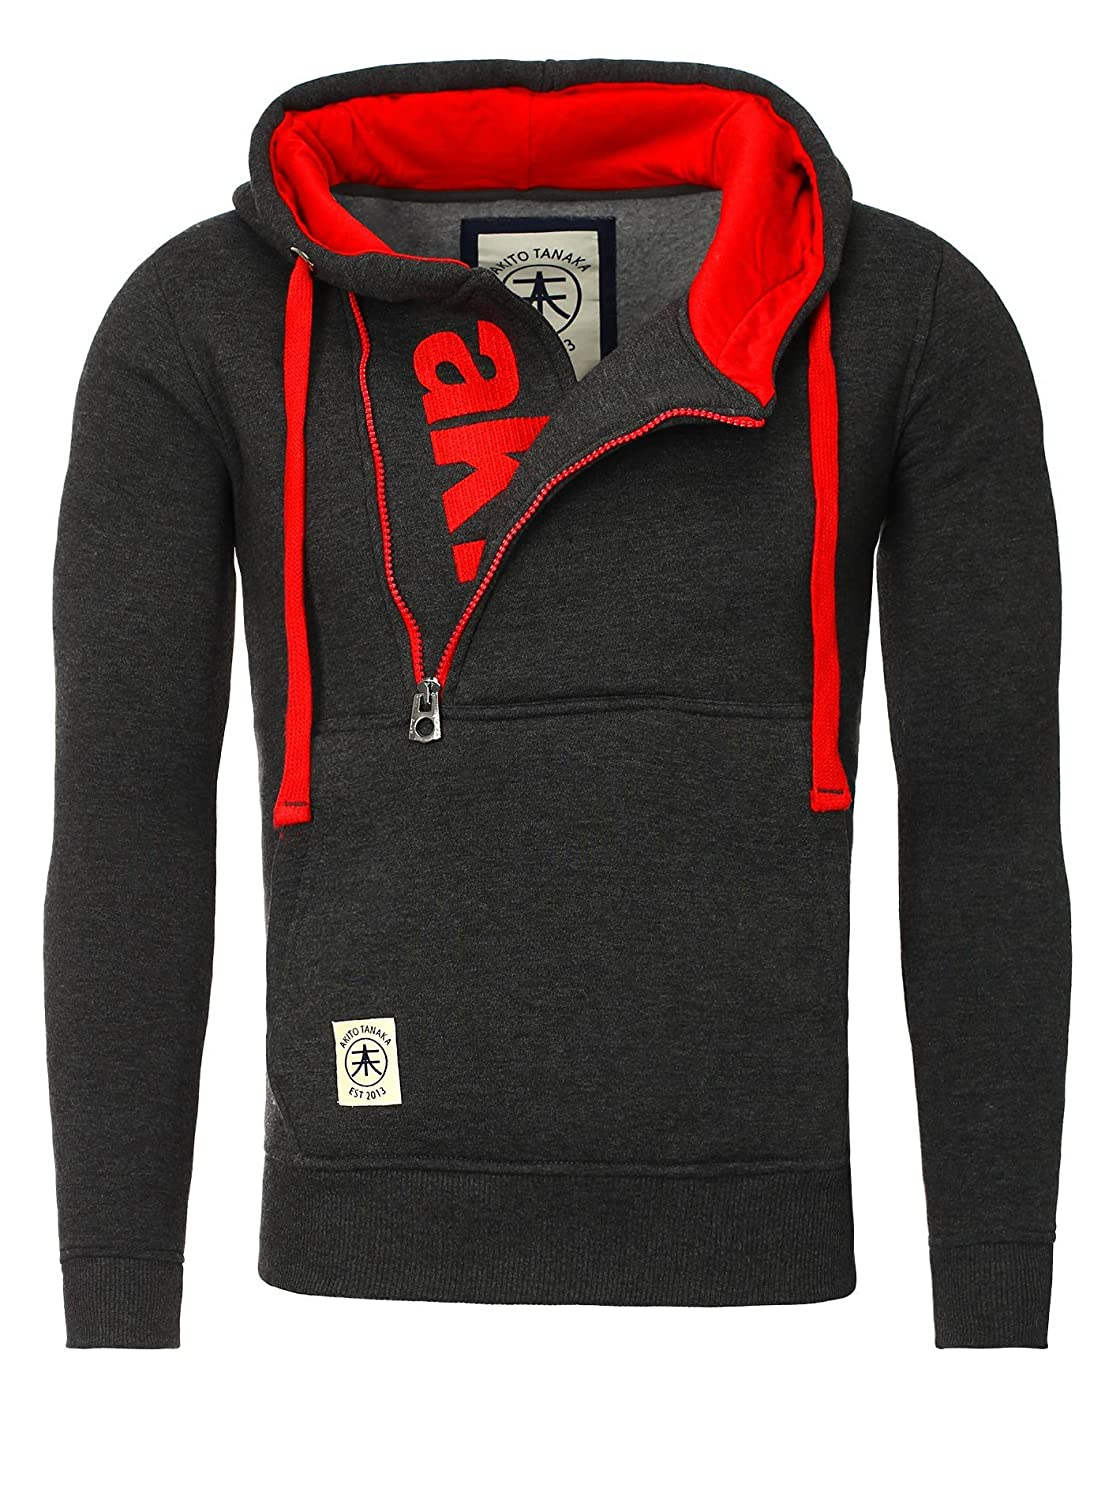 Akito Tanaka Sweater Men VERTICAL ZIP SWEAT red Charcoal